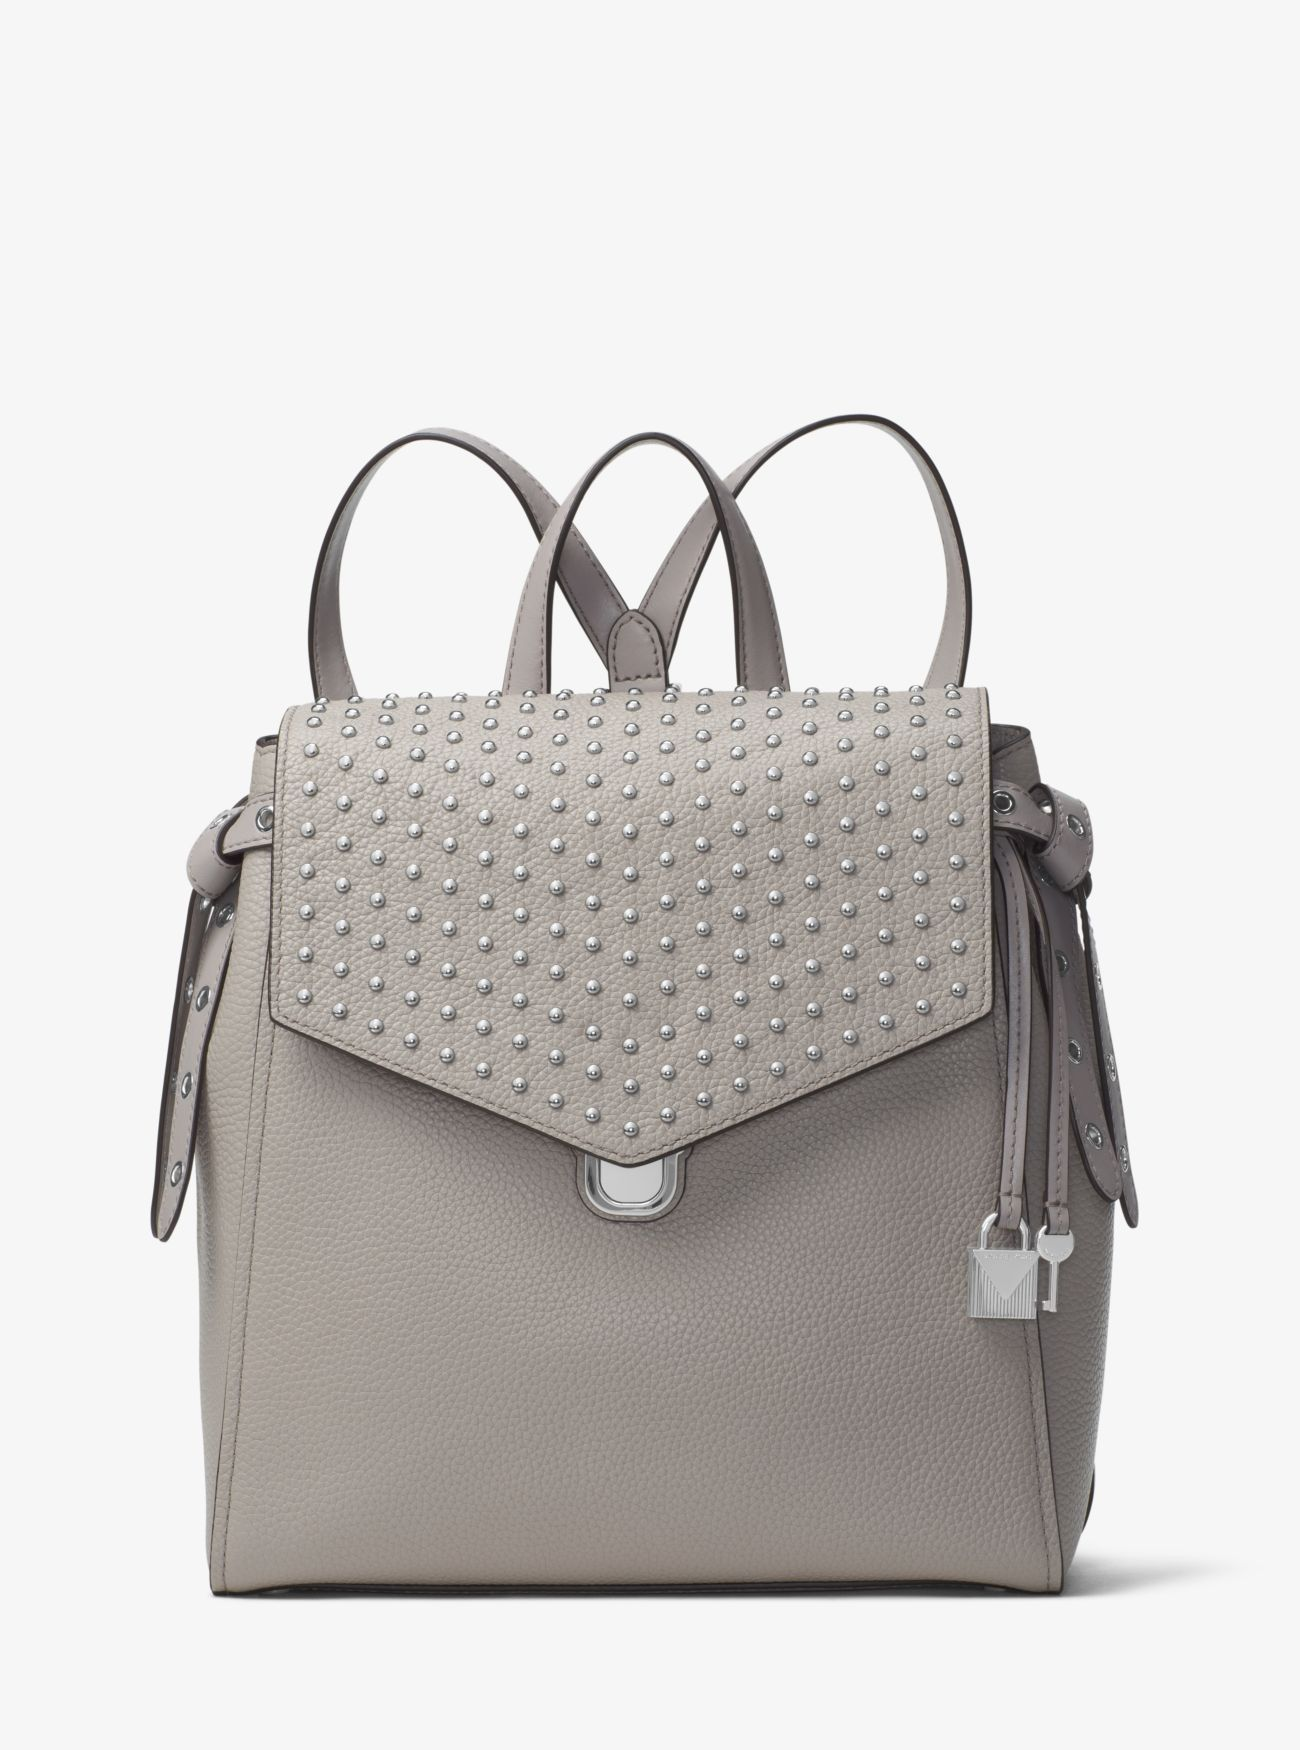 22f6cd19a9c7 Price Michael Kors Pearl Grey Bristol Medium Studded Leather Backpack Cheap